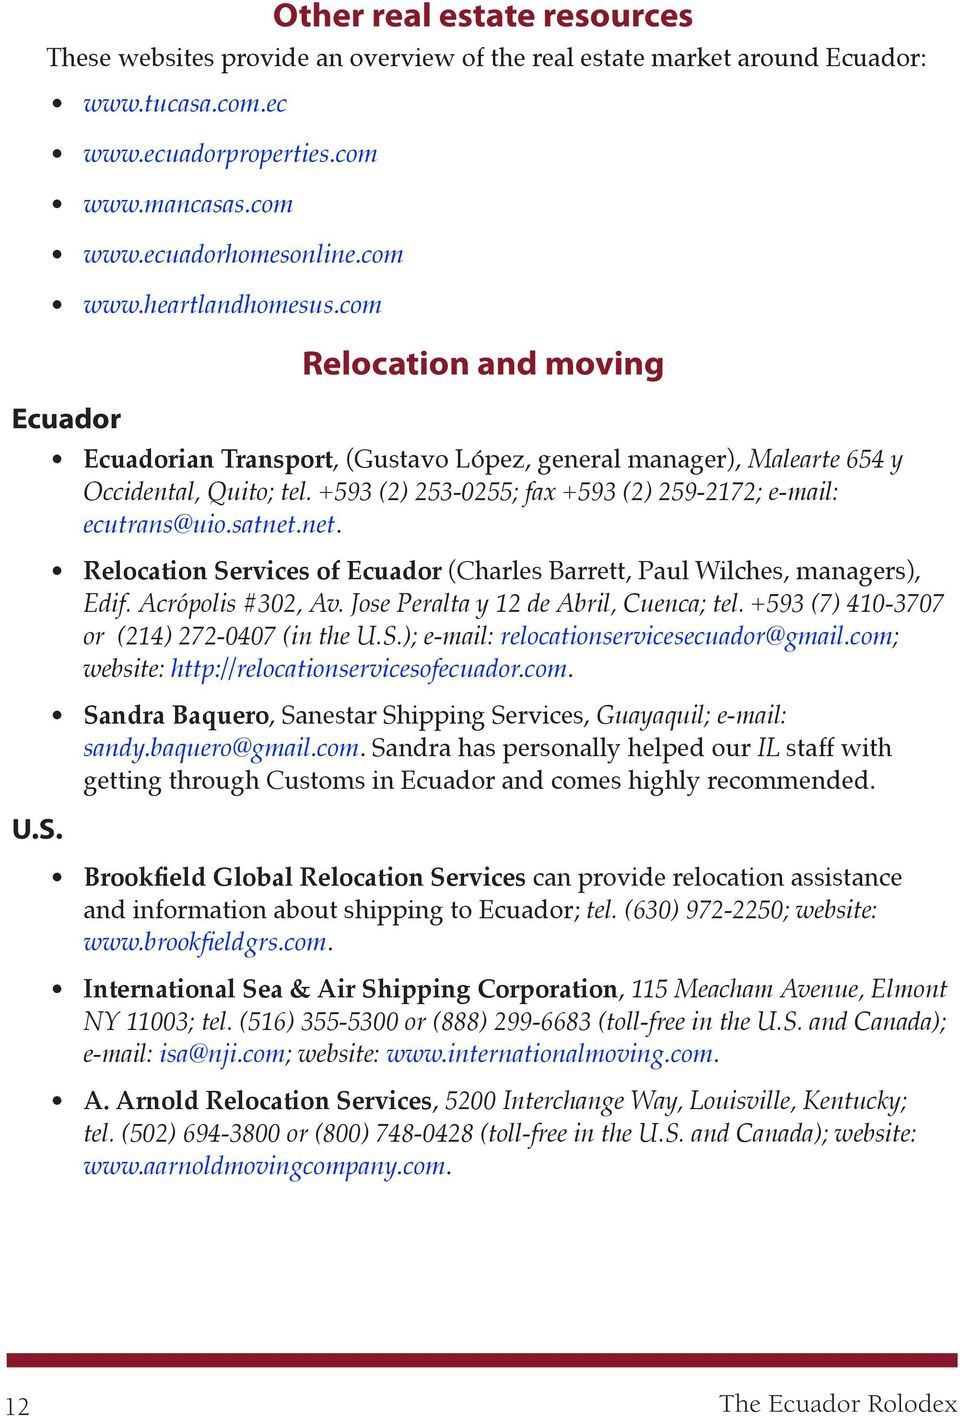 satnet.net. Relocation Services of Ecuador (Charles Barrett, Paul Wilches, managers), Edif. Acrópolis #302, Av. Jose Peralta y 12 de Abril, Cuenca; tel. +593 (7) 410-3707 or (214) 272-0407 (in the U.